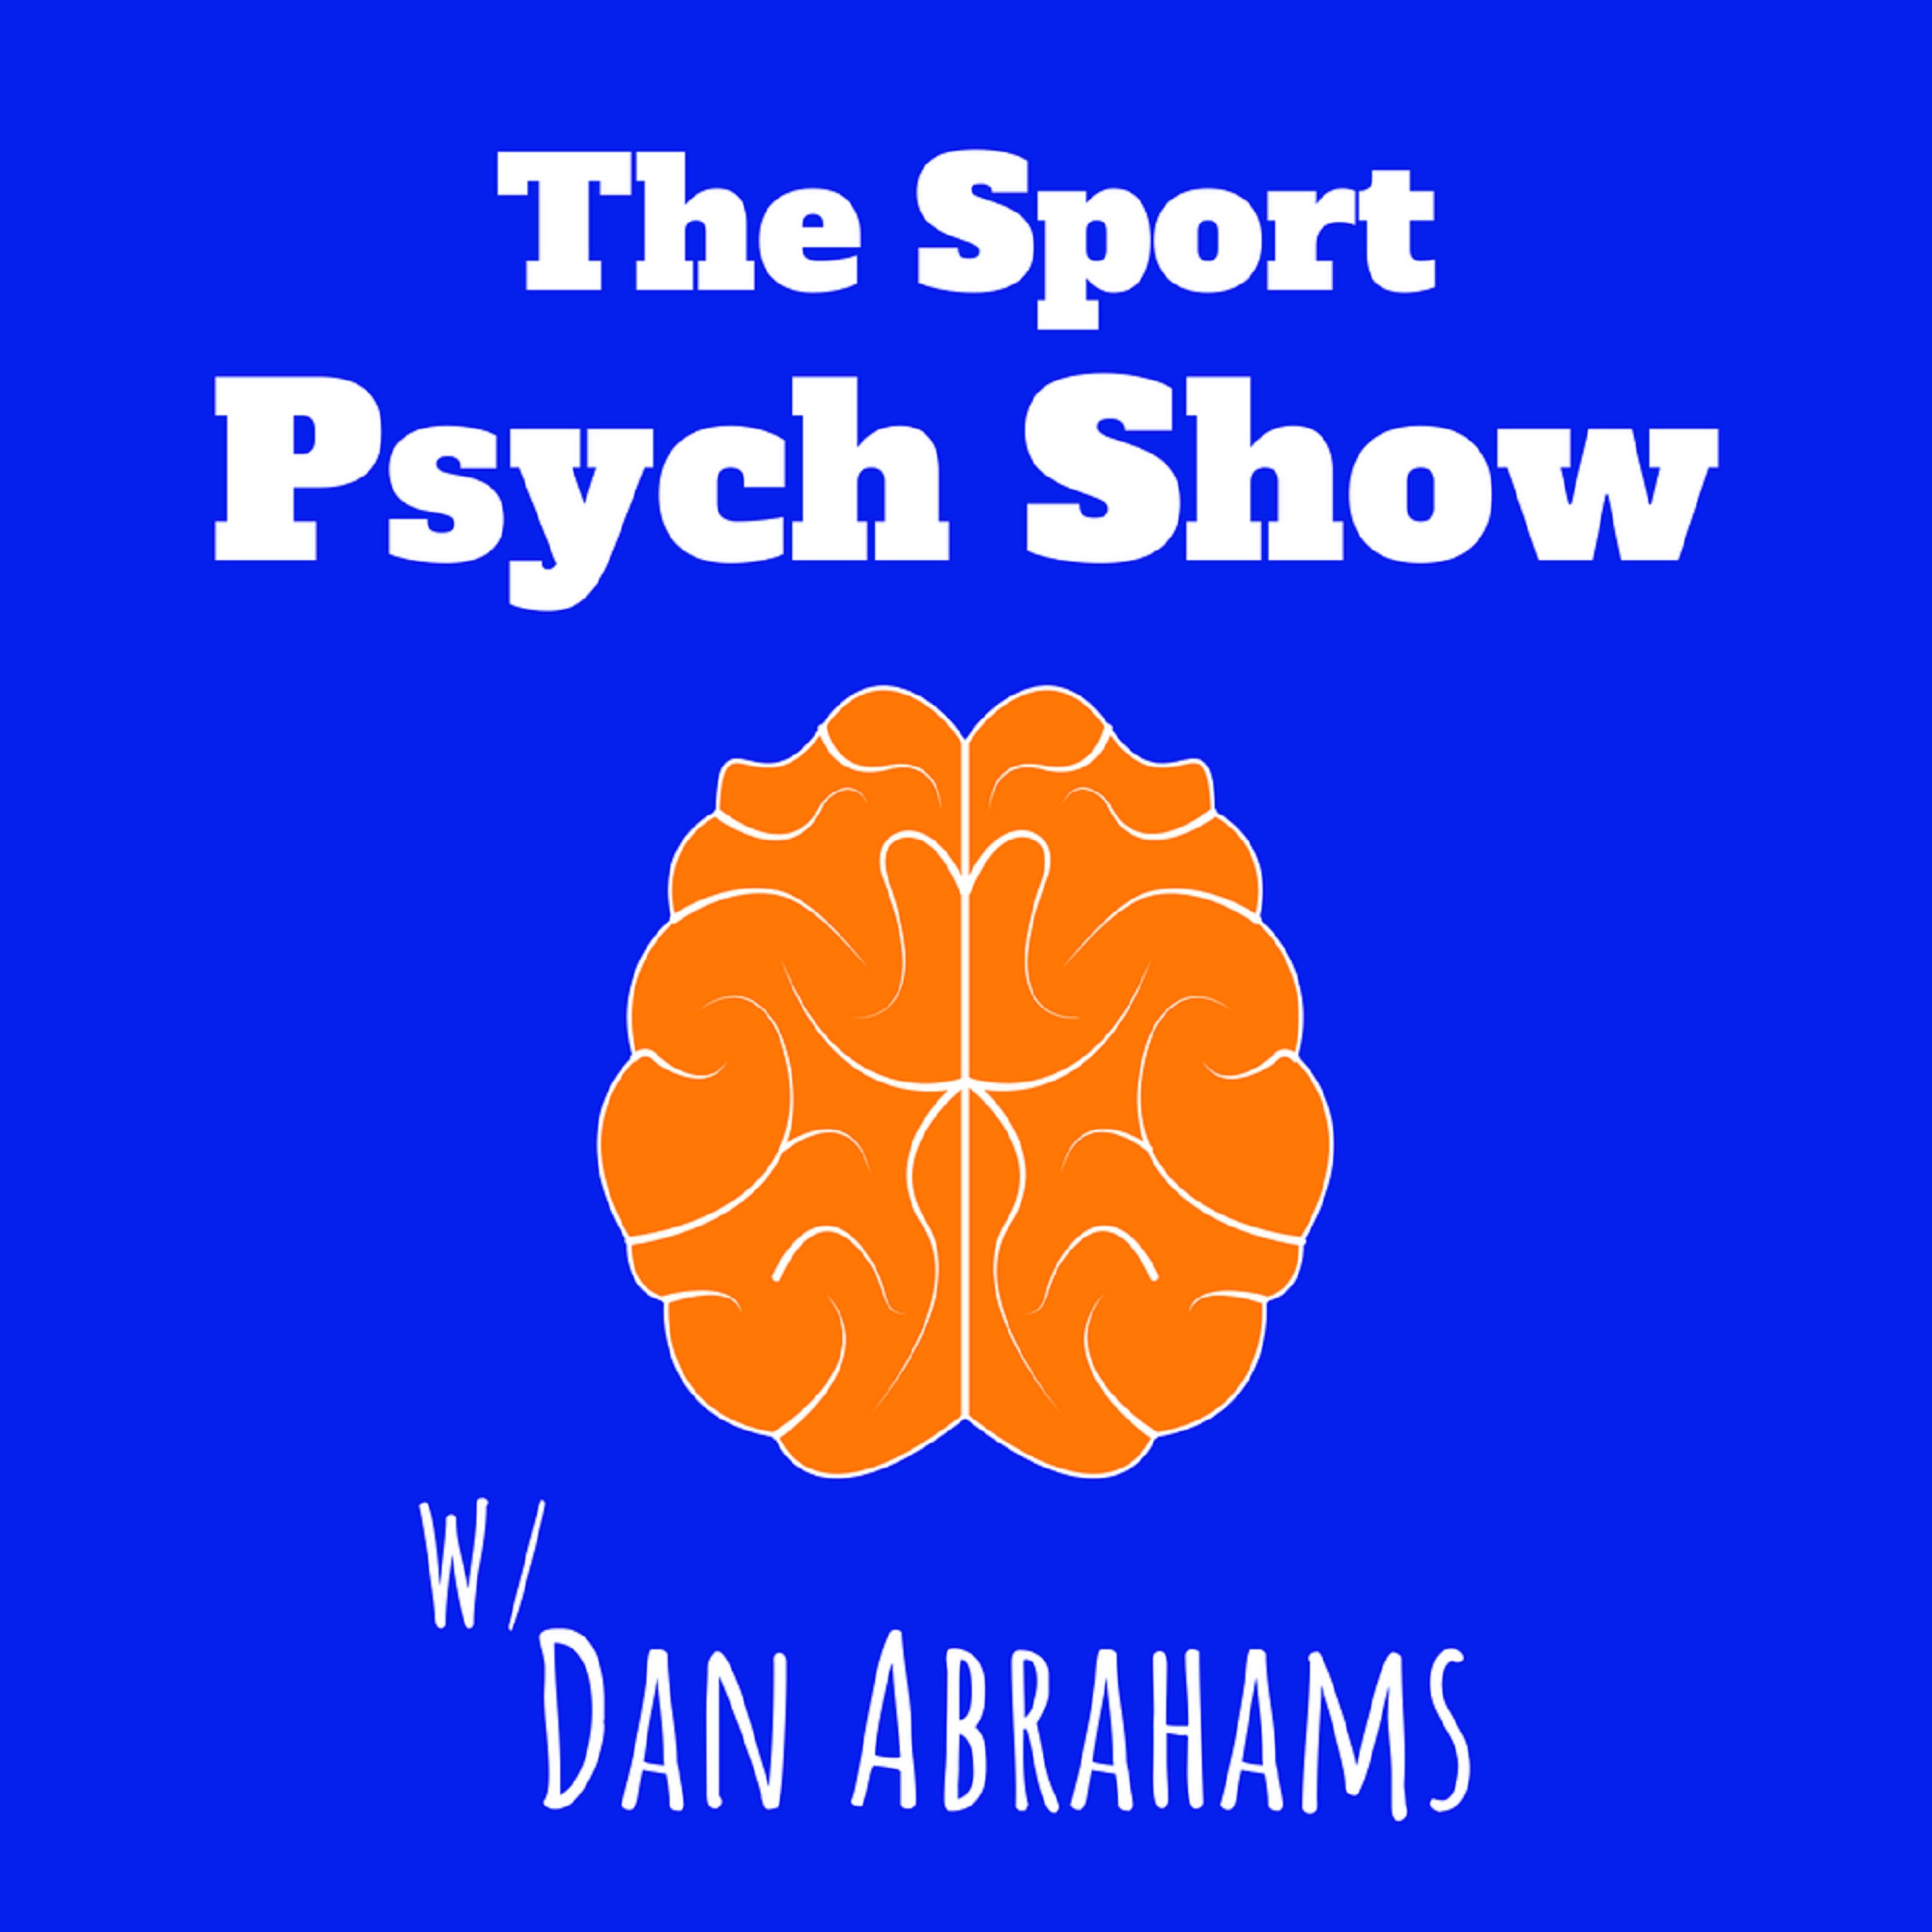 The Sport Psych Show - Superstitions in Sport: What's Luck got to do with it?